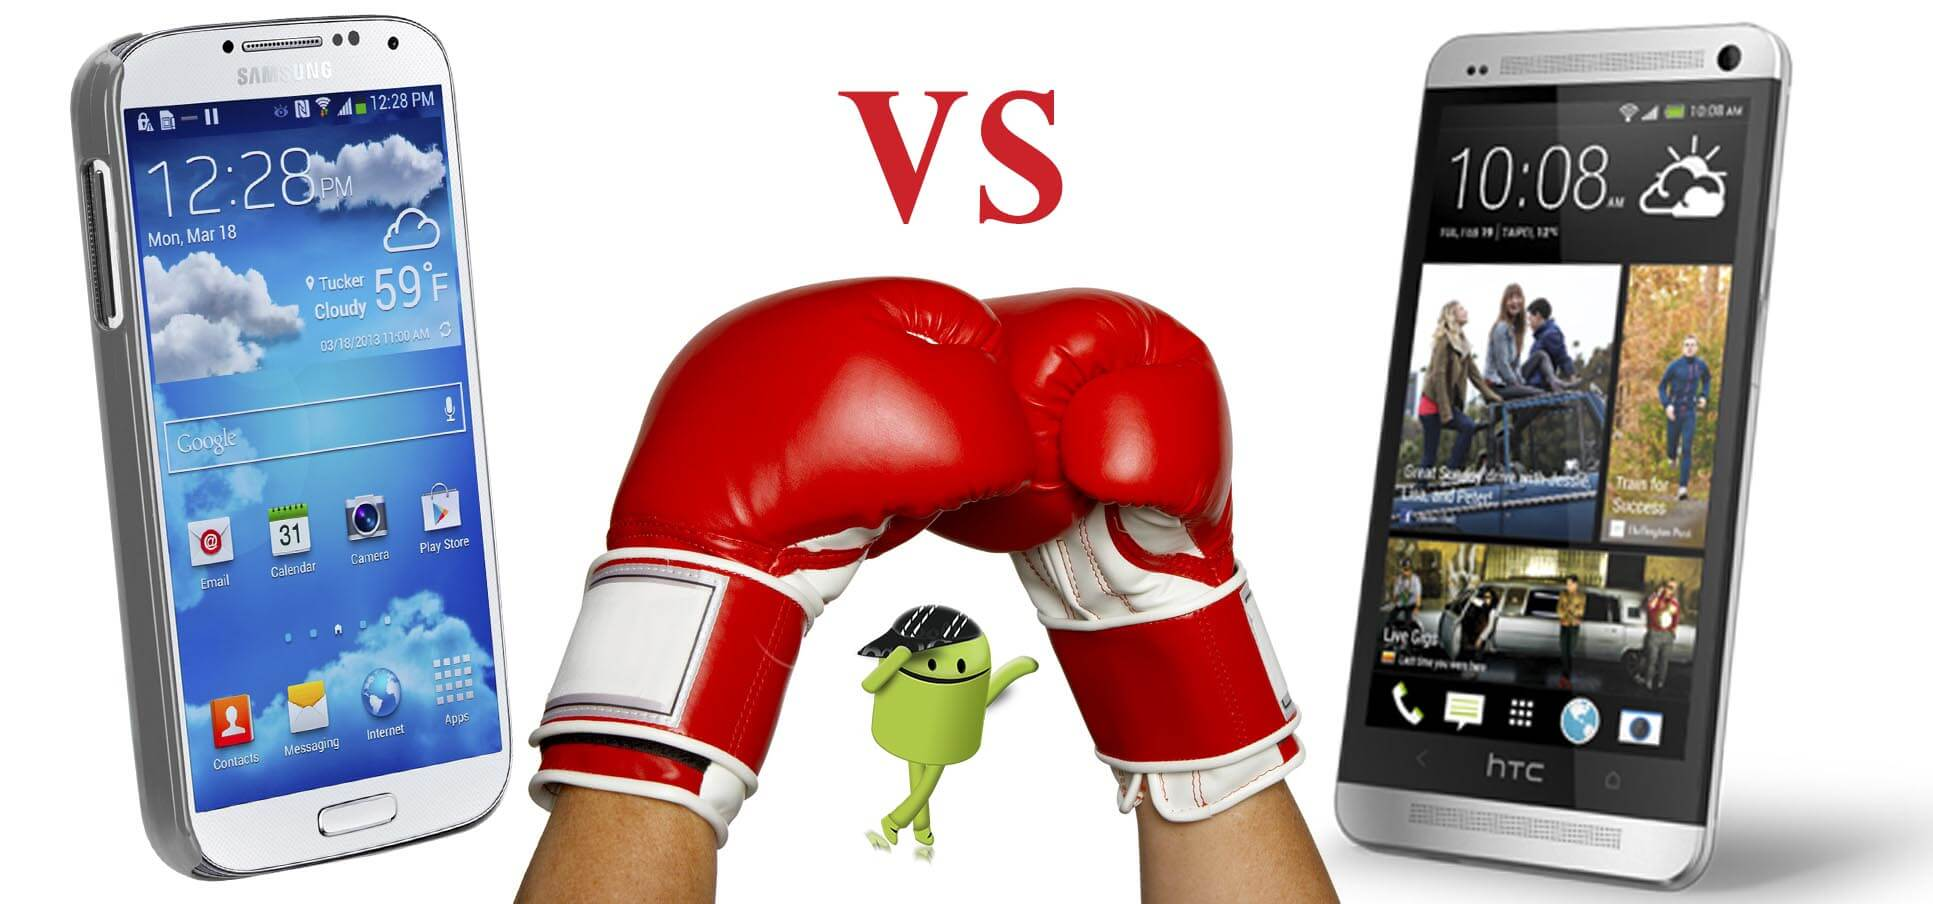 Authentic Review of Samsung Galaxy S4 vs HTC One